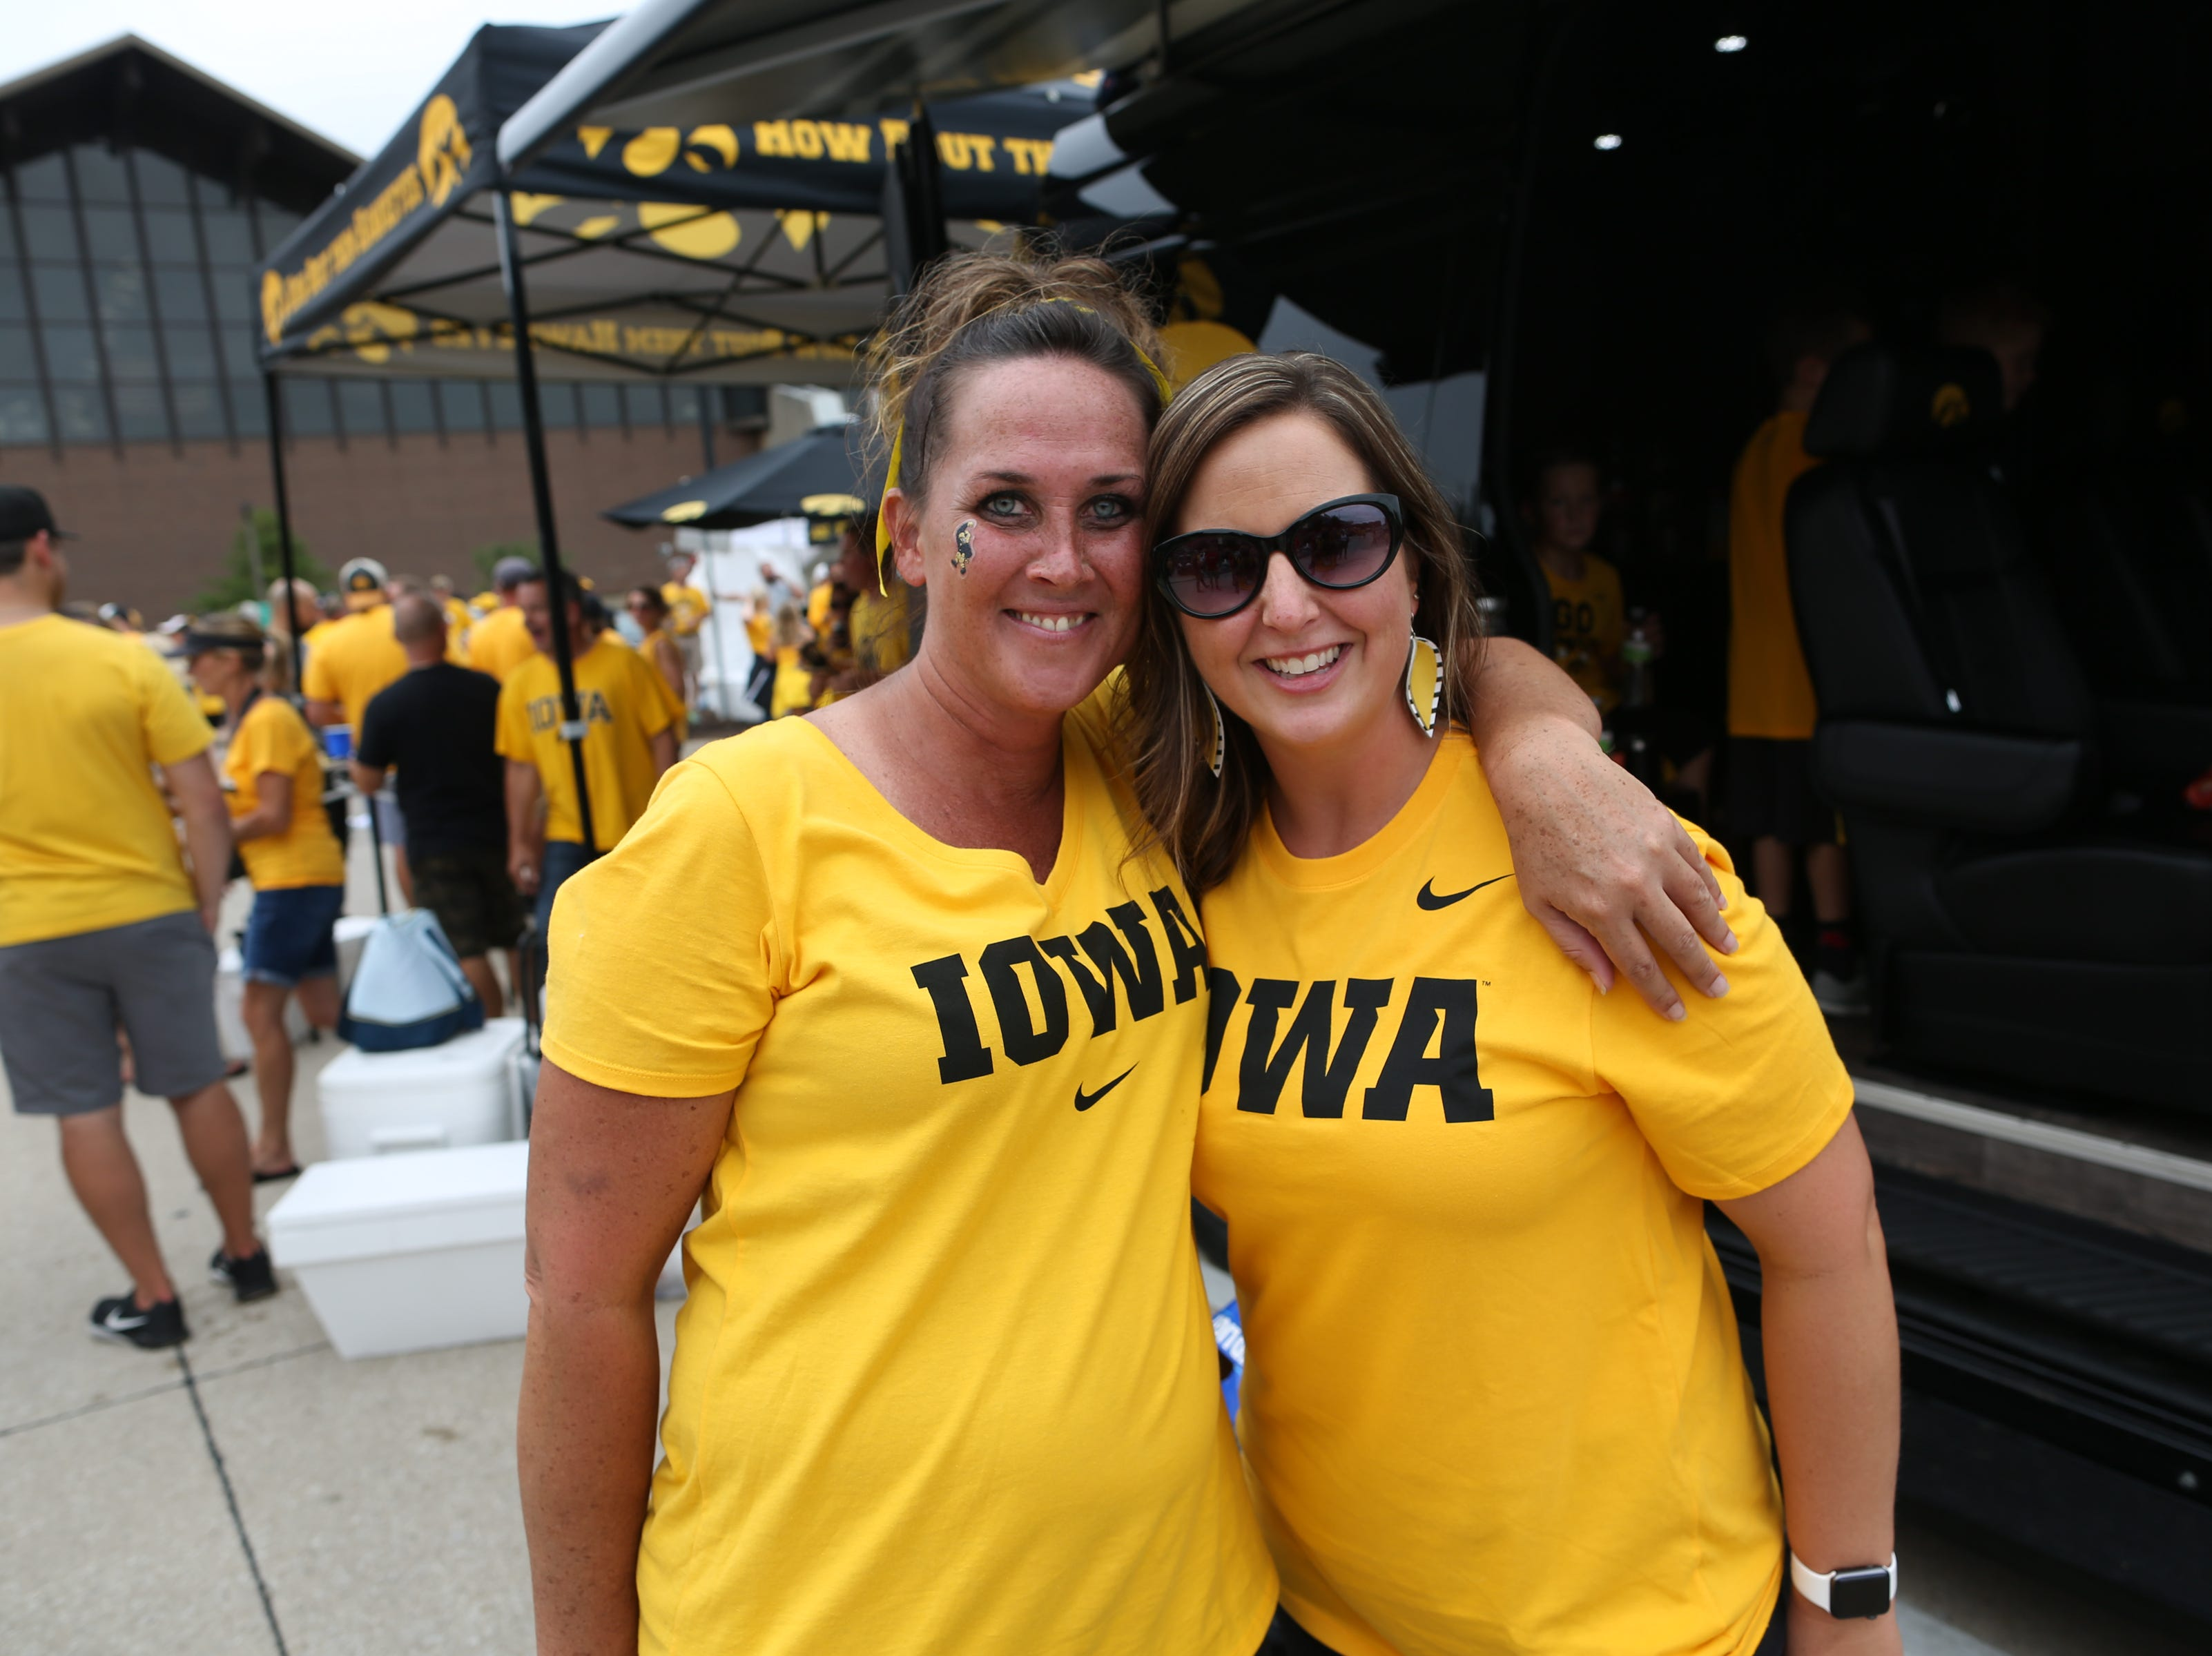 Nikki Steverson, left, of Urbandale and Kinsey Bodensteiner of Clive pose for a photo outside Kinnick Stadium before the Hawkeyes' game against Northern Illinois on Satuday, Sept. 1, 2018.